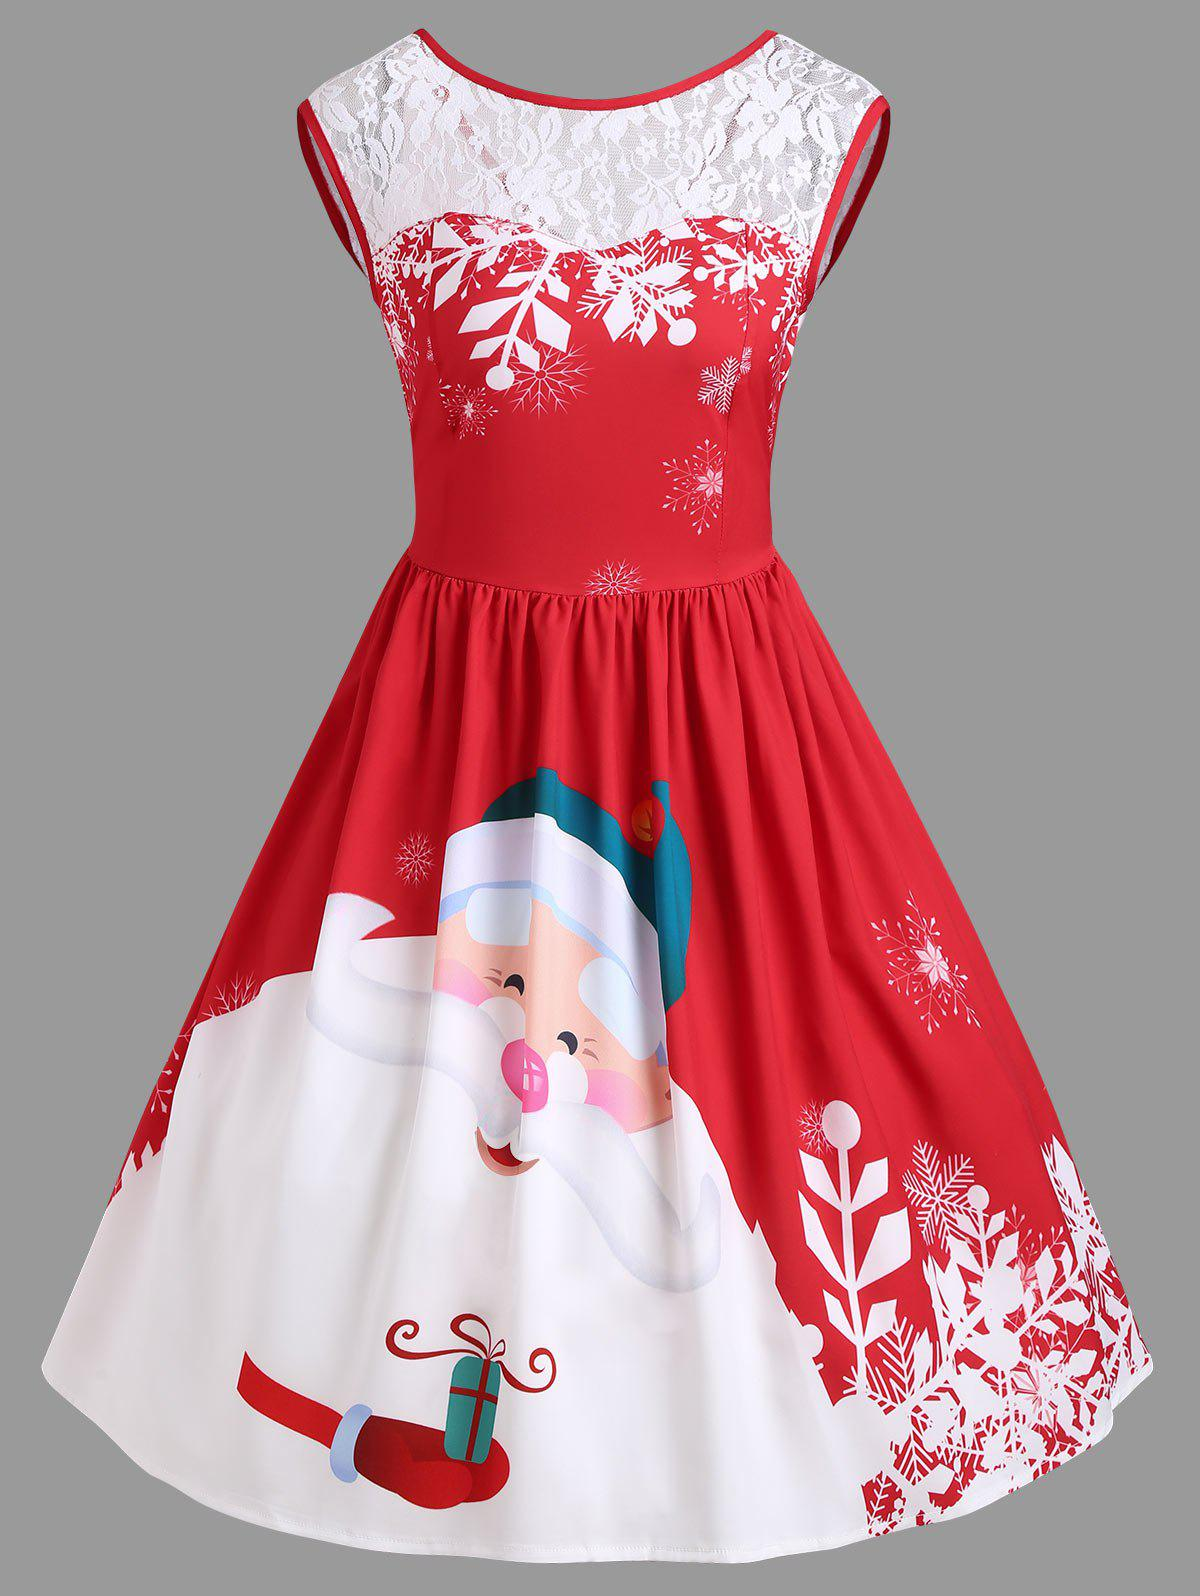 Christmas Santa Claus Print Lace Insert Party DressWOMEN<br><br>Size: XL; Color: RED; Style: Vintage; Material: Polyester,Spandex; Silhouette: A-Line; Dresses Length: Knee-Length; Neckline: Round Collar; Sleeve Length: Sleeveless; Pattern Type: Patchwork,Print; With Belt: No; Season: Fall,Spring; Weight: 0.3500kg; Package Contents: 1 x Dress;